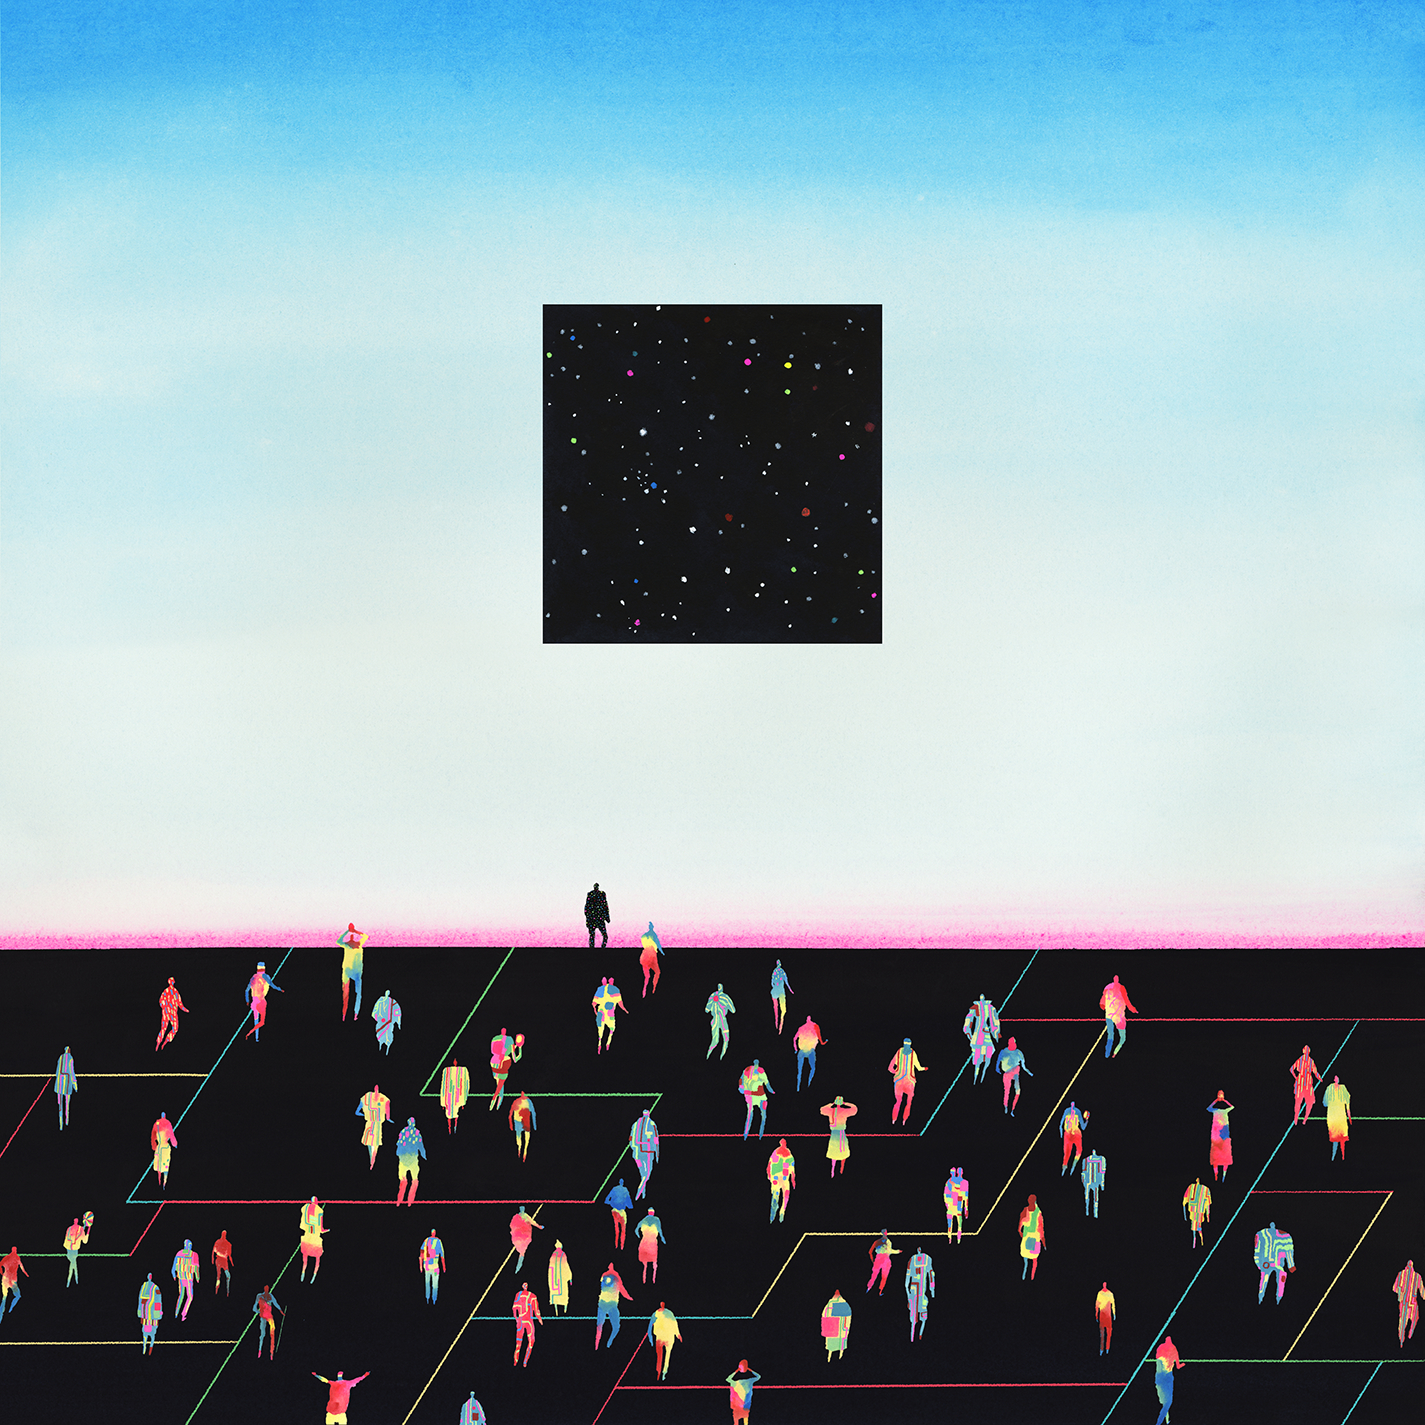 7.Young The Giant - Mirror Master - Favorite Song: Simplify